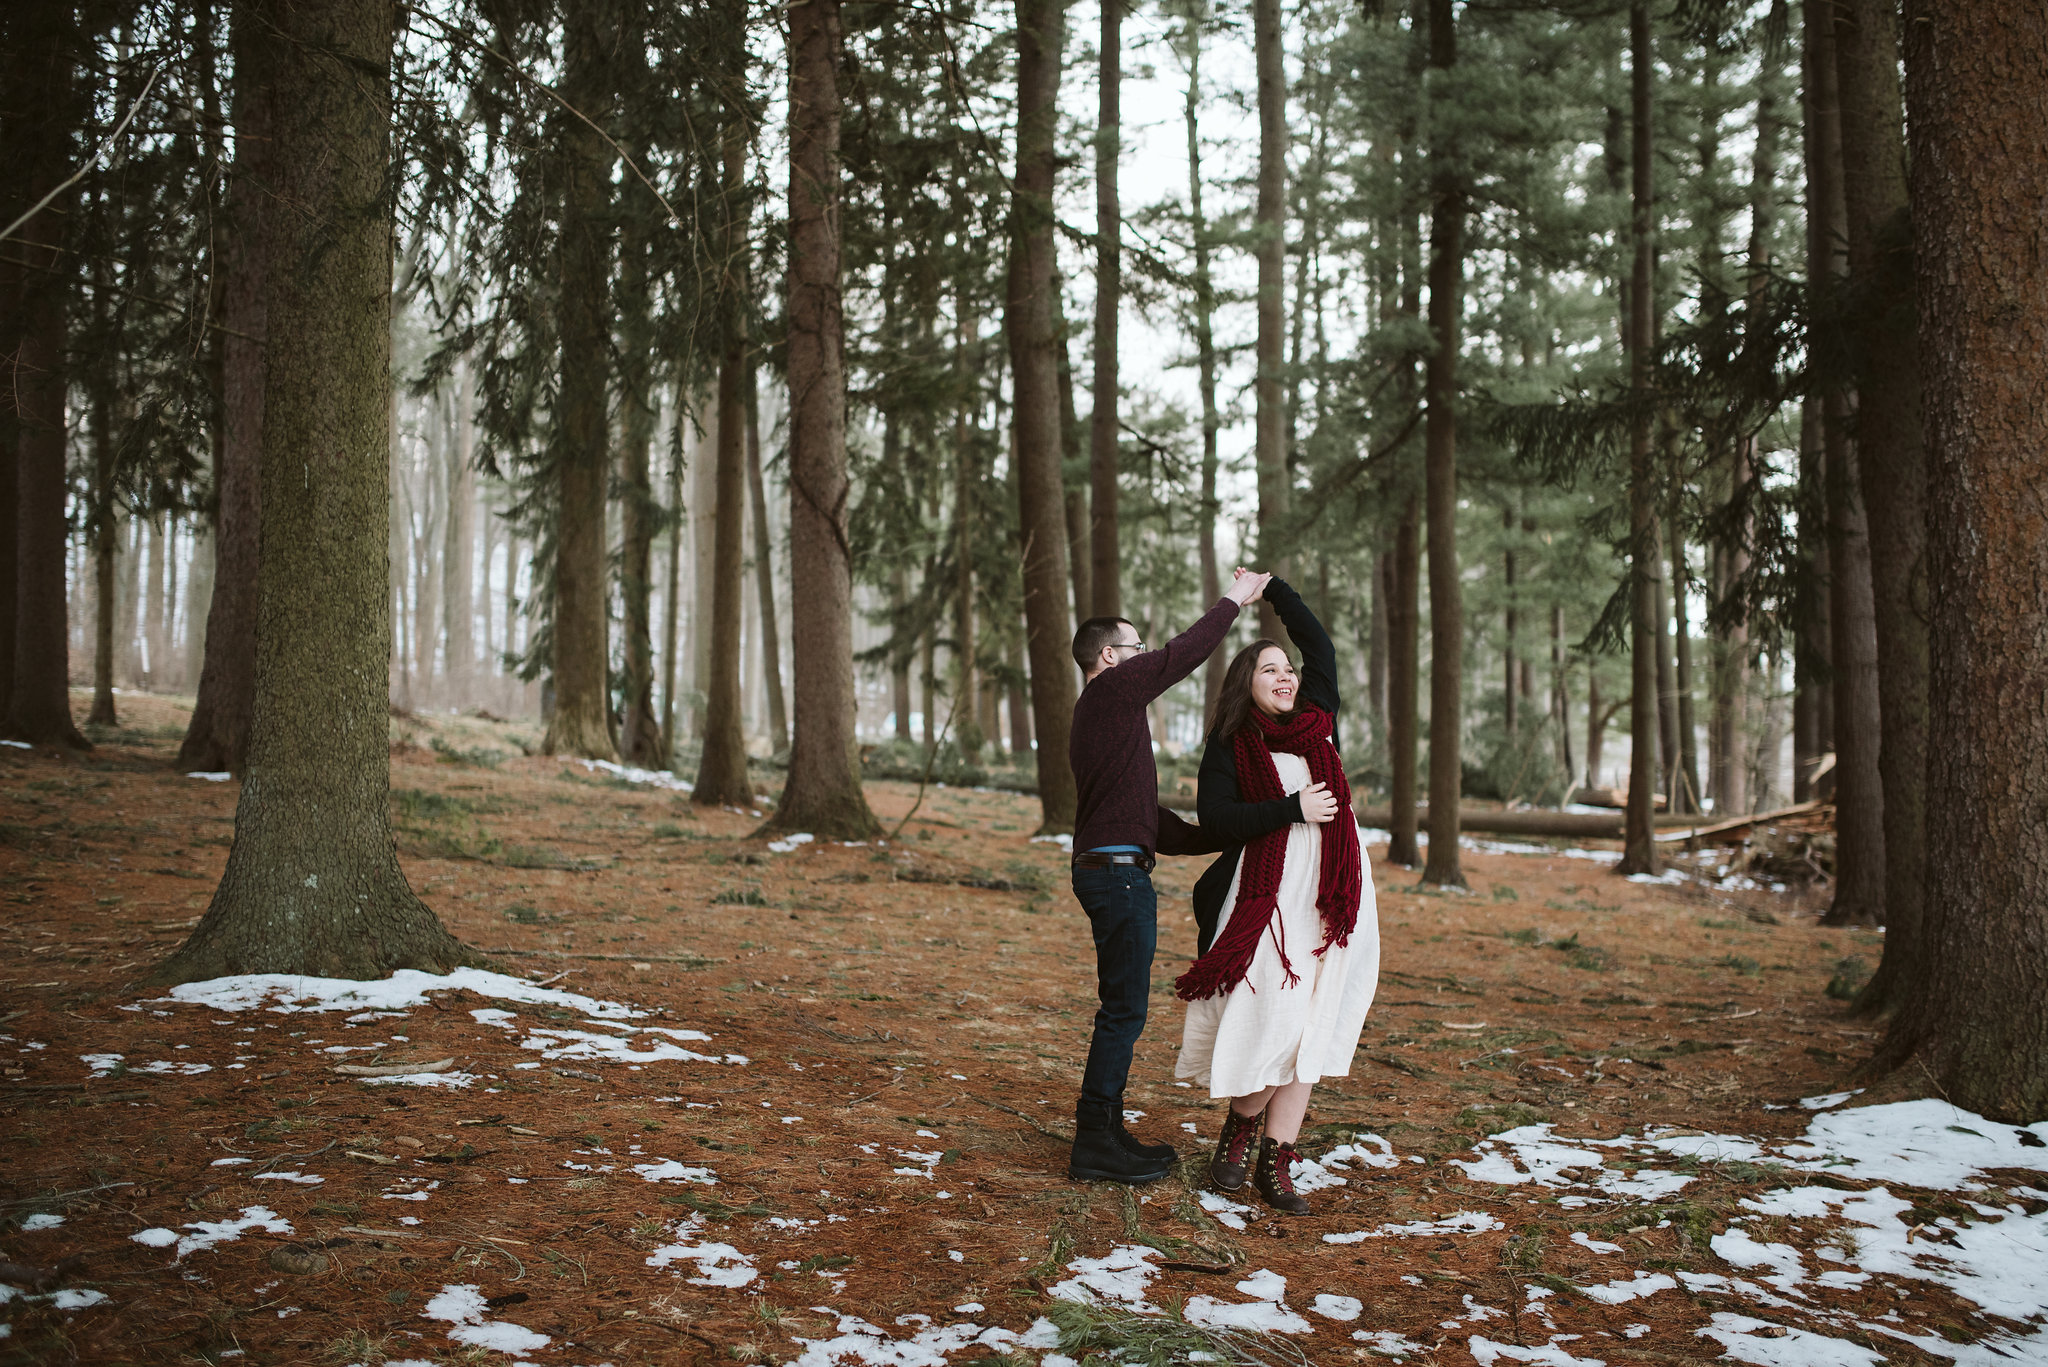 Baltimore County, Loch Raven Reservoir, Maryland Wedding Photographer, Winter, Engagement Photos, Nature, Romantic, Clean and Classic, Bride and Groom Dancing in Woods on Cold Spring Morning